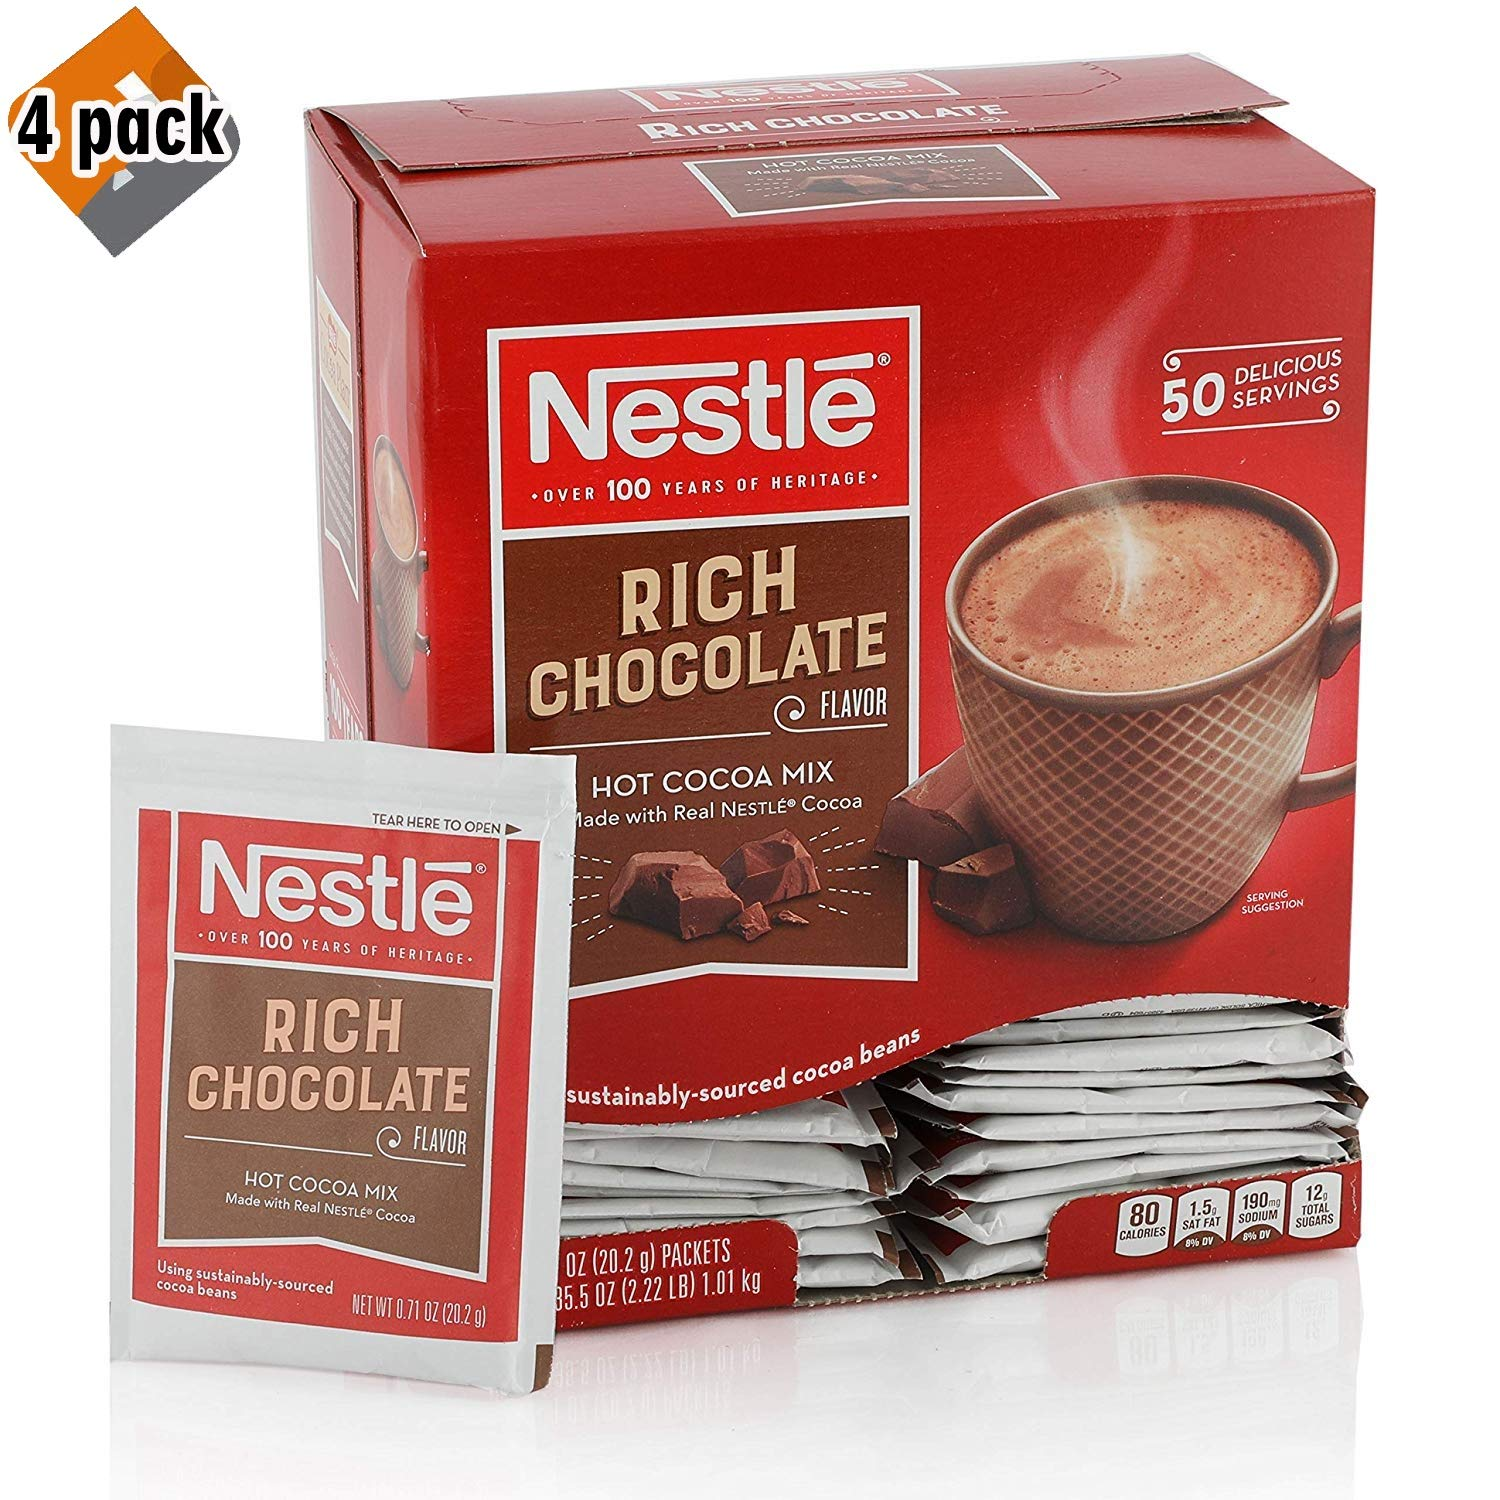 Nestle Hot Chocolate Mix, Hot Cocoa, Rich Chocolate Flavor, Made with Real Cocoa, 50 Count - 4 Pack by Nestle Hot Cocoa